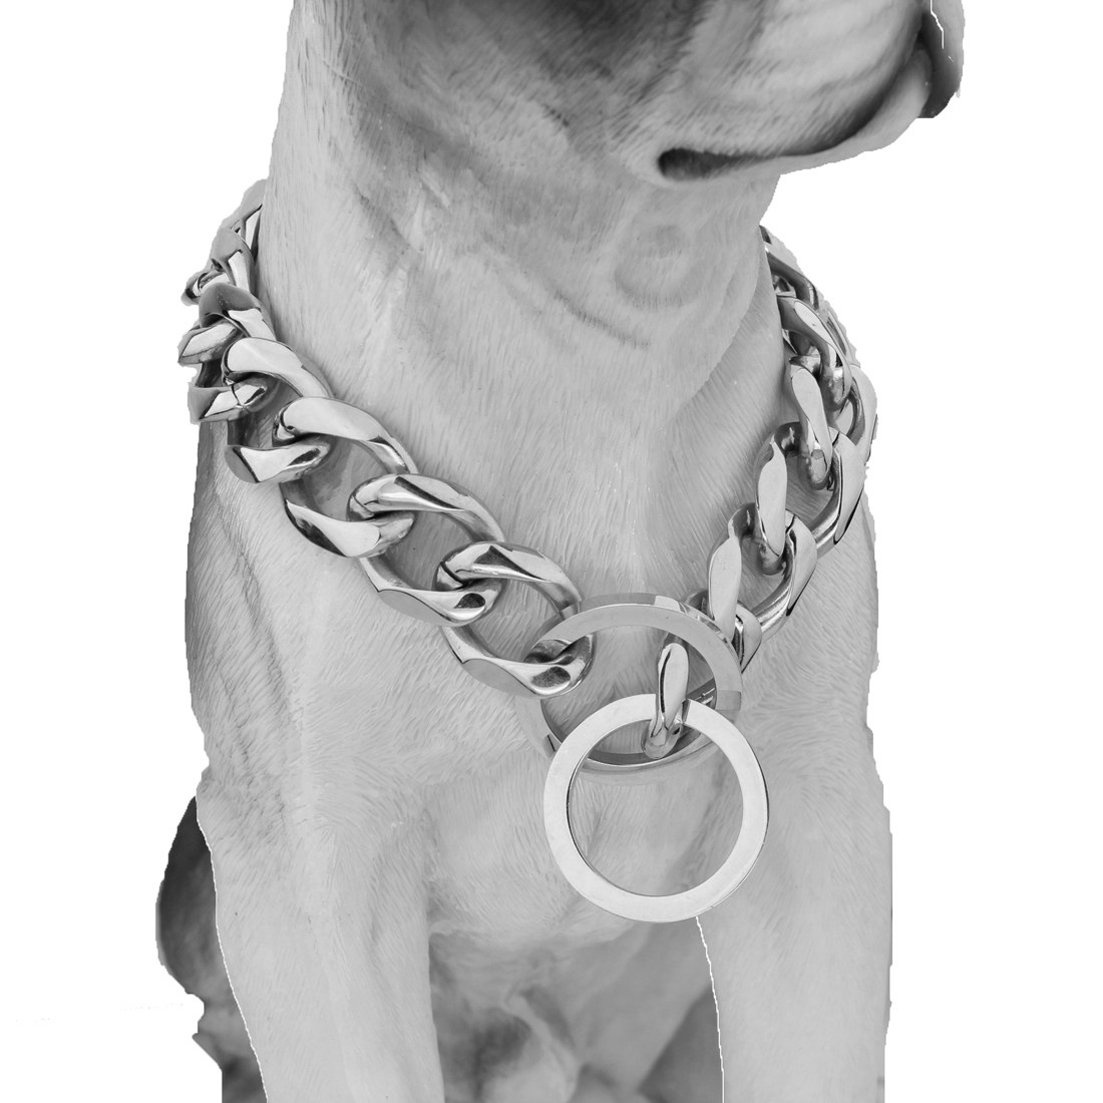 10/12/15/17/19mm Strong Curb Cuban Link 316L Stainless Steel Dog Choke Chain Collar 12-36inch(26inches,19mm)